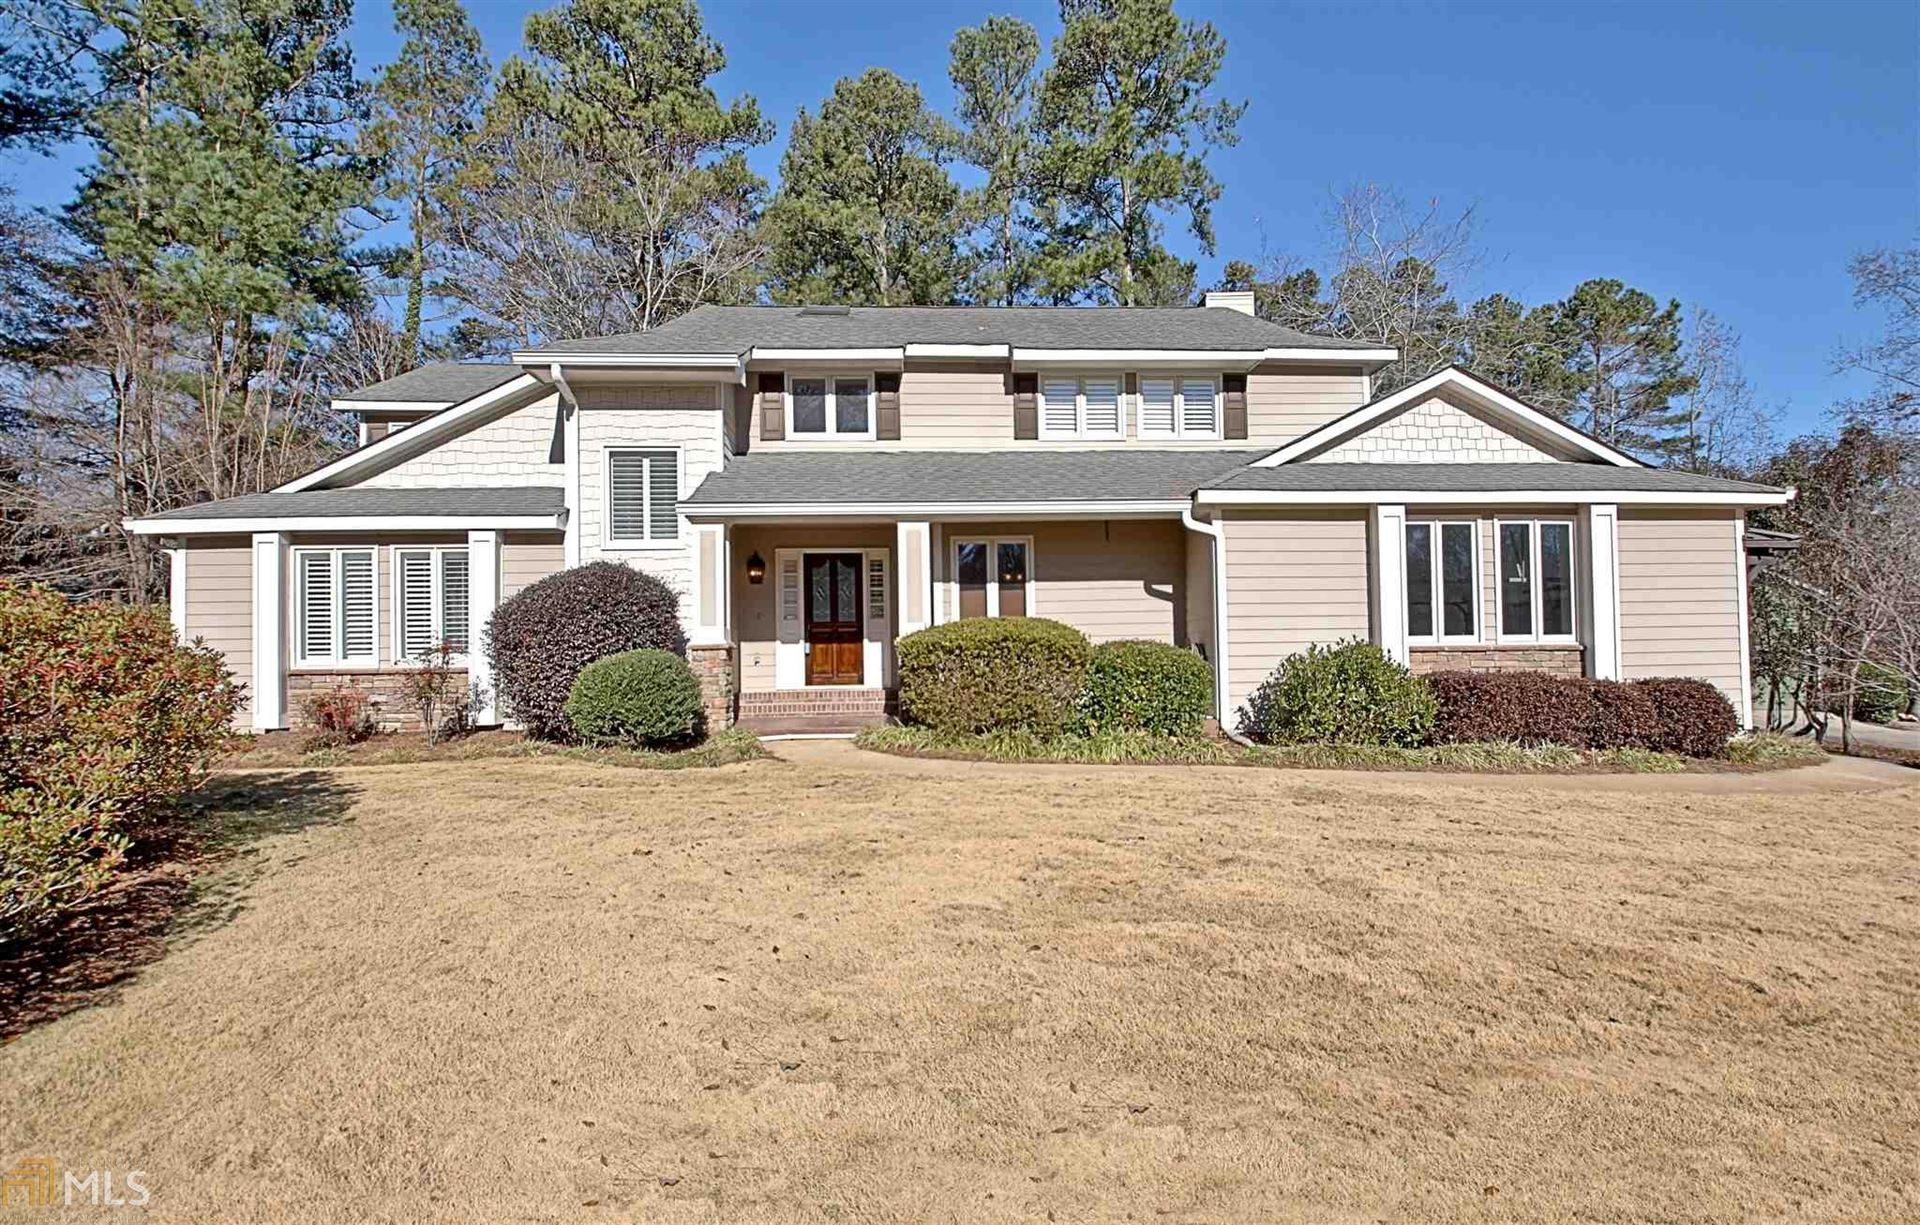 101 Springridge Ct, Peachtree City, GA 30269 - #: 8901447